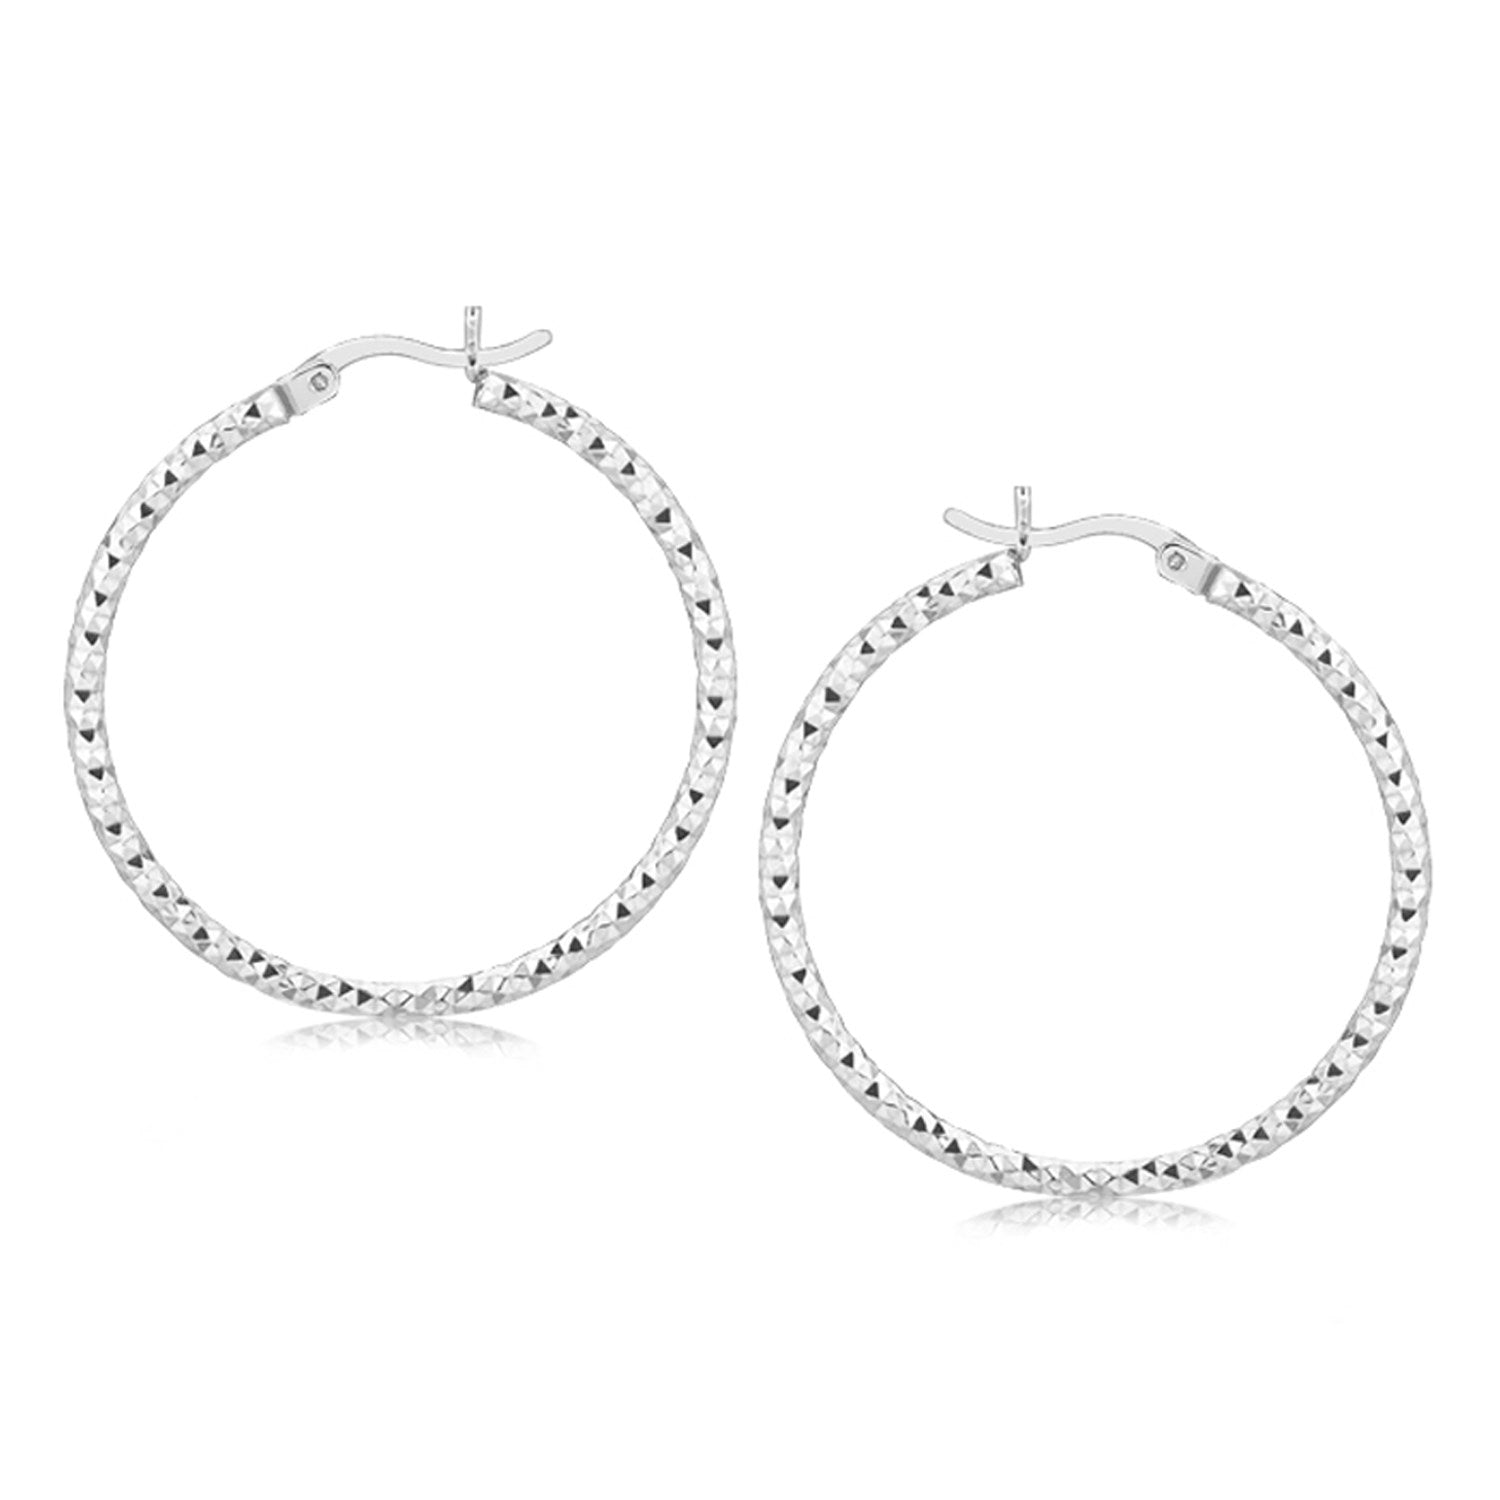 Unique Modern Paris Style Sterling Silver Rhodium Plated Woven Style Polished Hoop Earrings